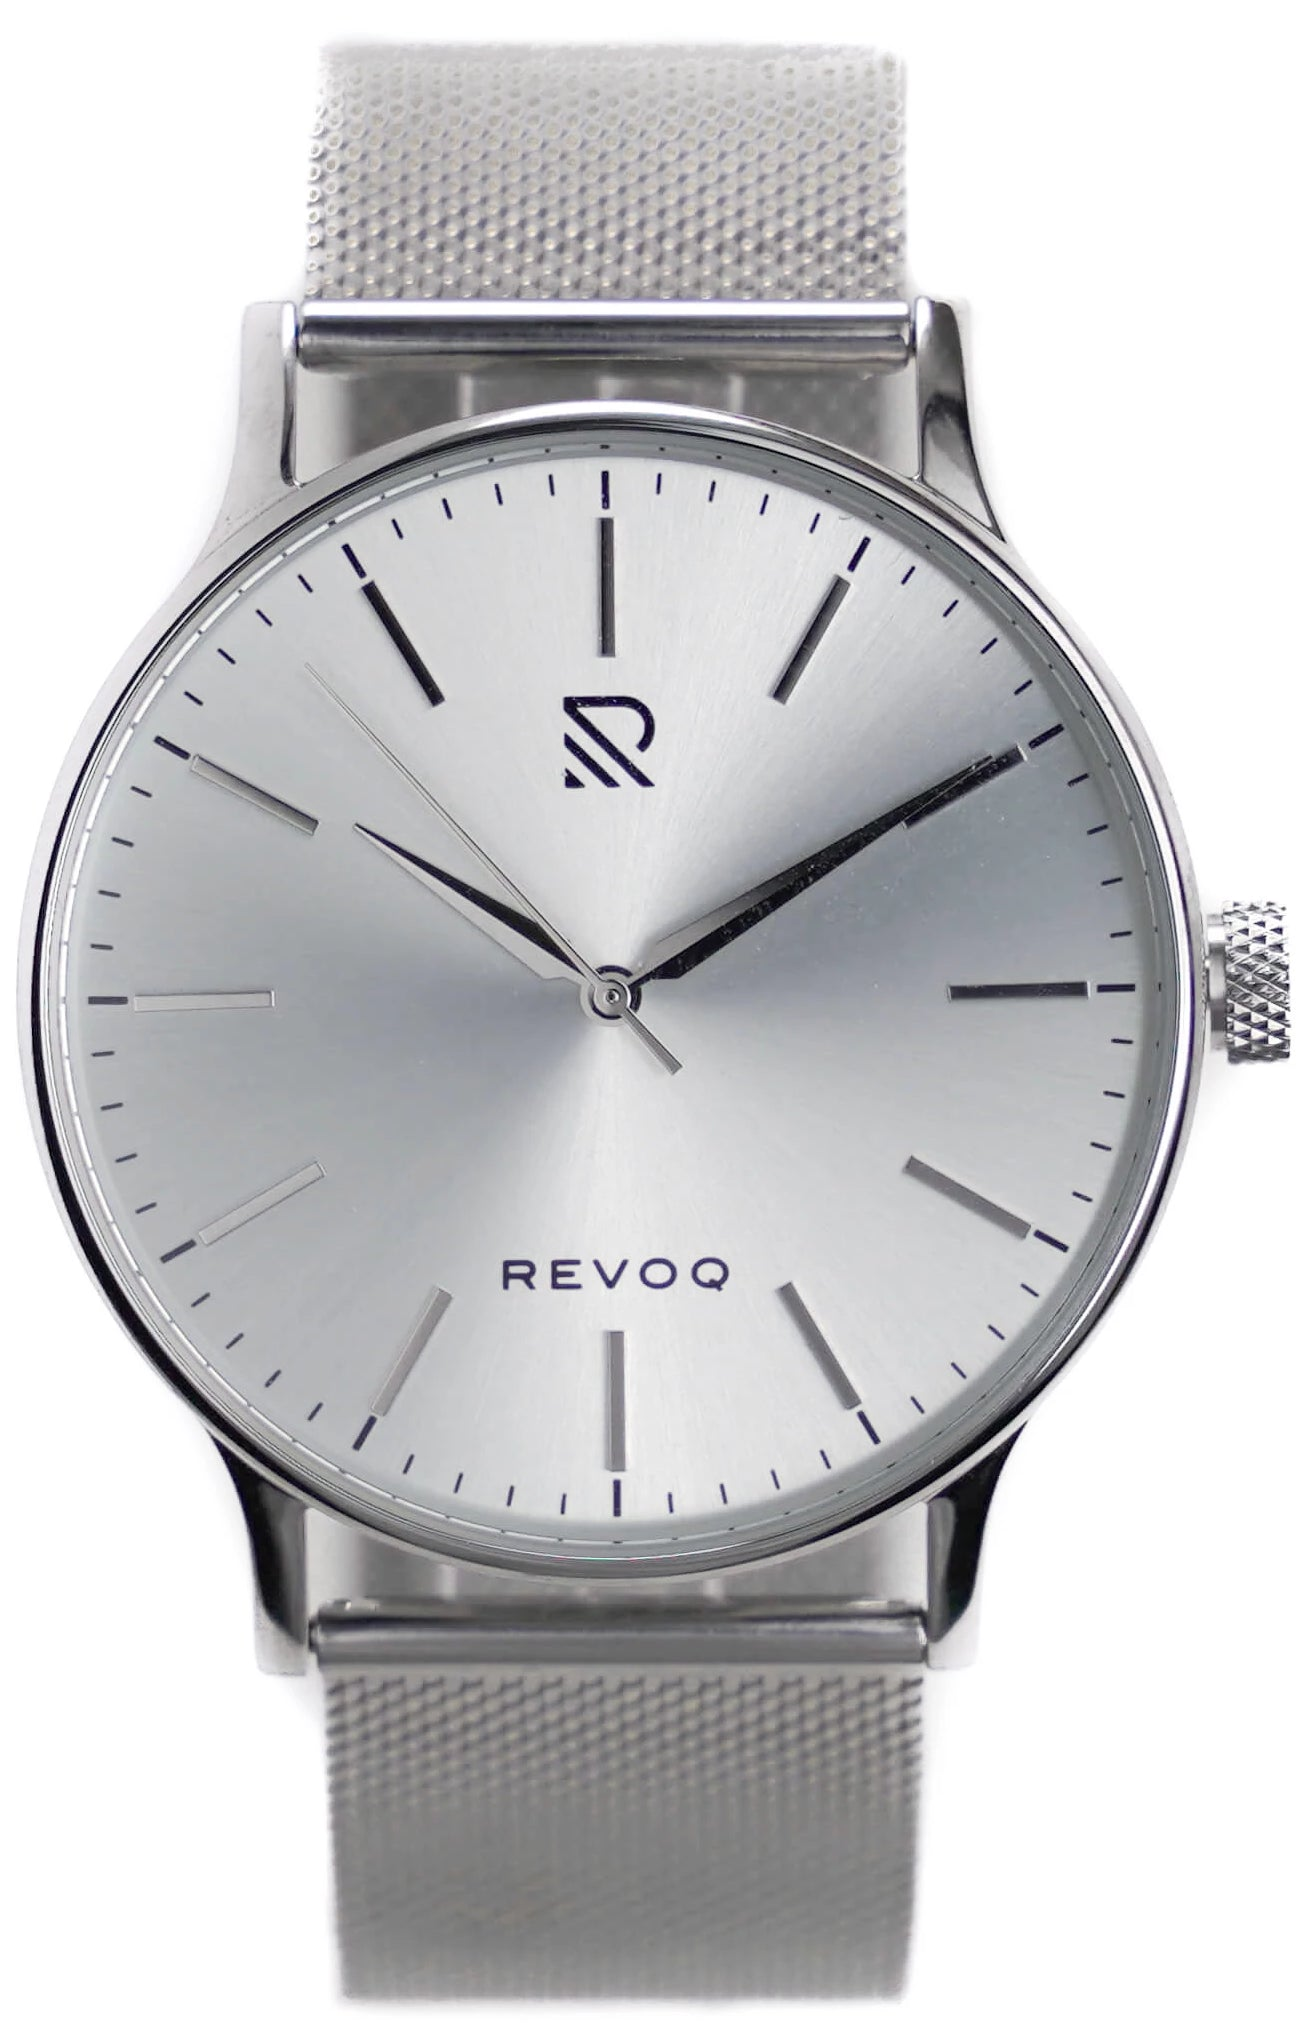 [watches_modern_REVPQ] - REVOQ watches